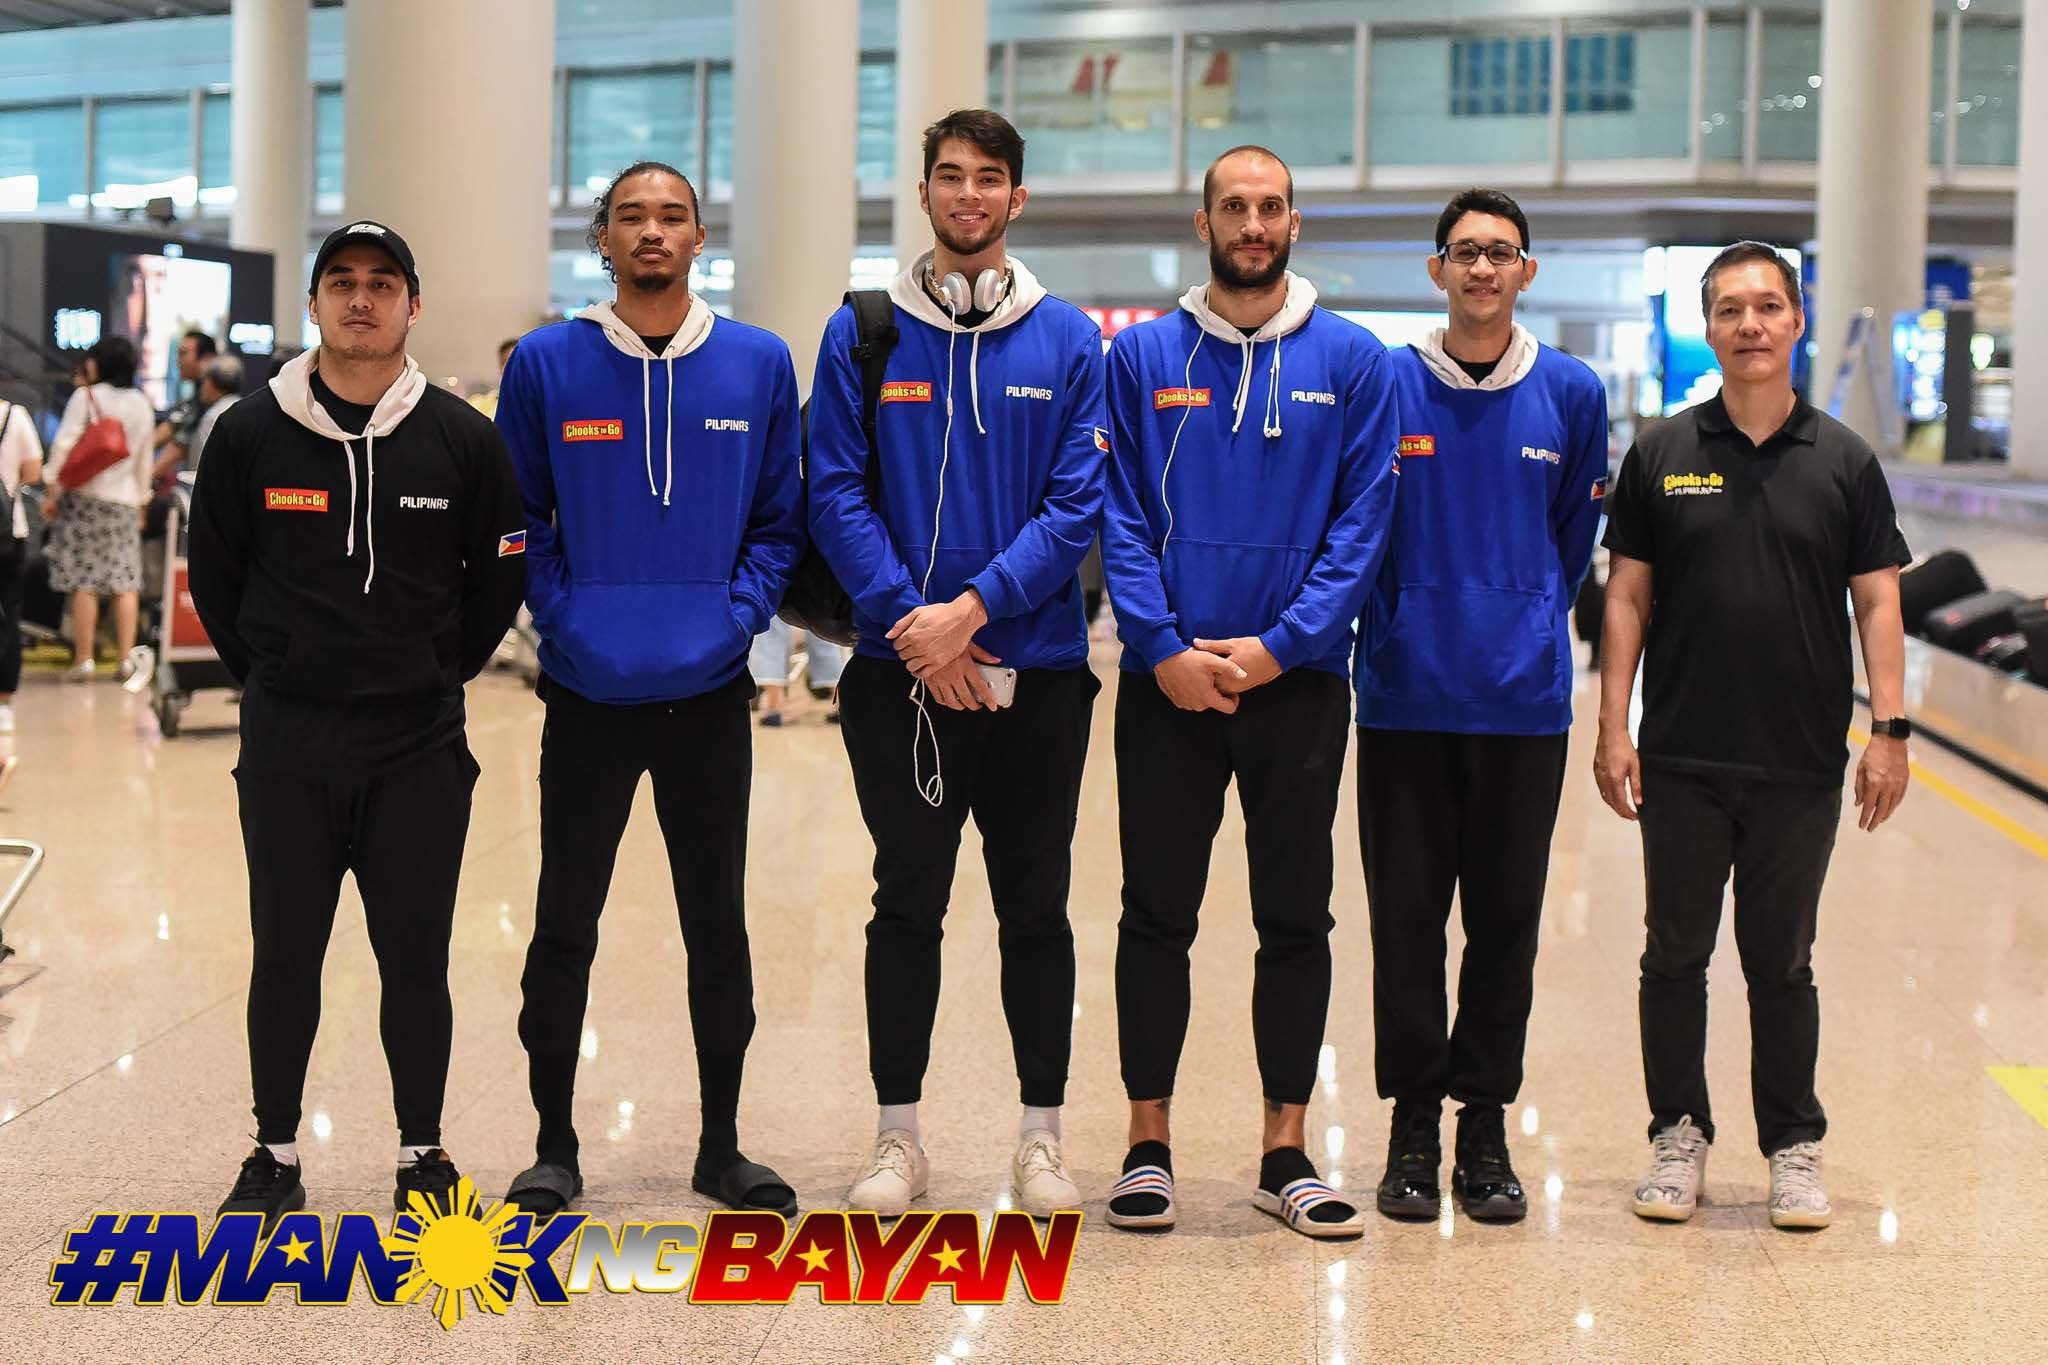 Tiebreaker Times Rike, Ababou eyed to step up as Statham-less Pasig competes in Xiongan 3x3 Basketball Chooks-to-Go Pilipinas 3x3 News  Troy Rike Nikola Pavlovic Joshua Munzon Dylan Ababou 2019 Xiongan Challenger 2019 Chooks-to-Go Pilipinas 3x3 Season